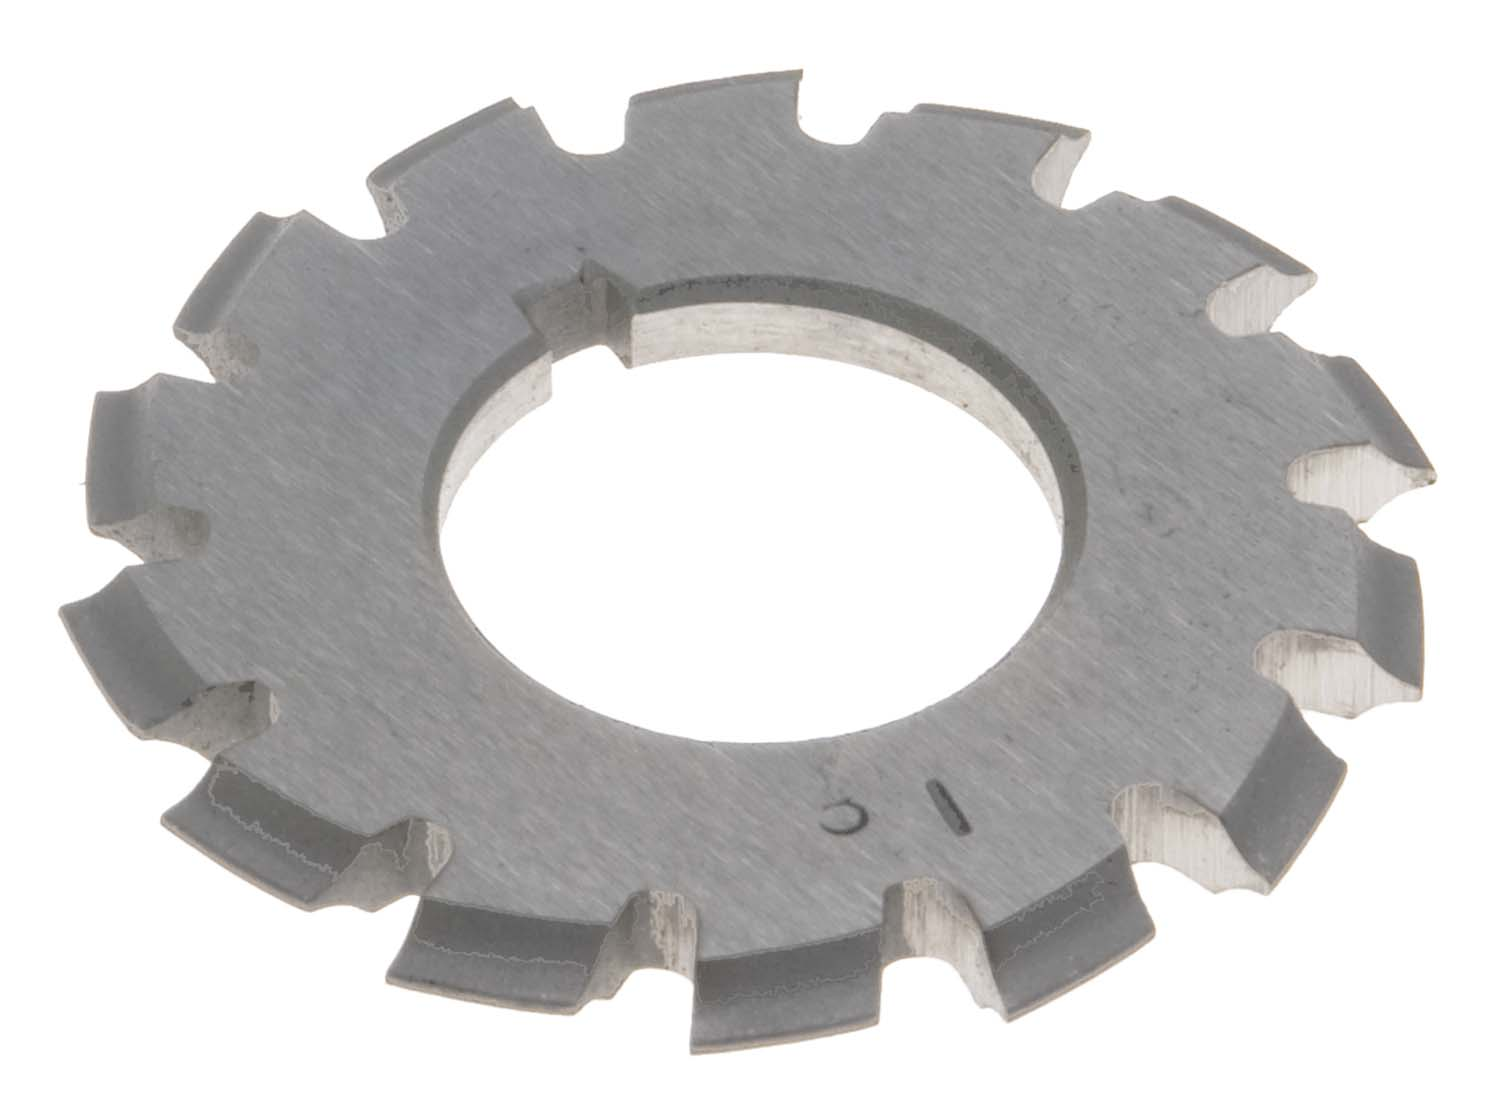 48 Diametral Pitch # 2  Involute Gear Cutter - 7/8 ID - 14-1/2 Degree Pressure Angle